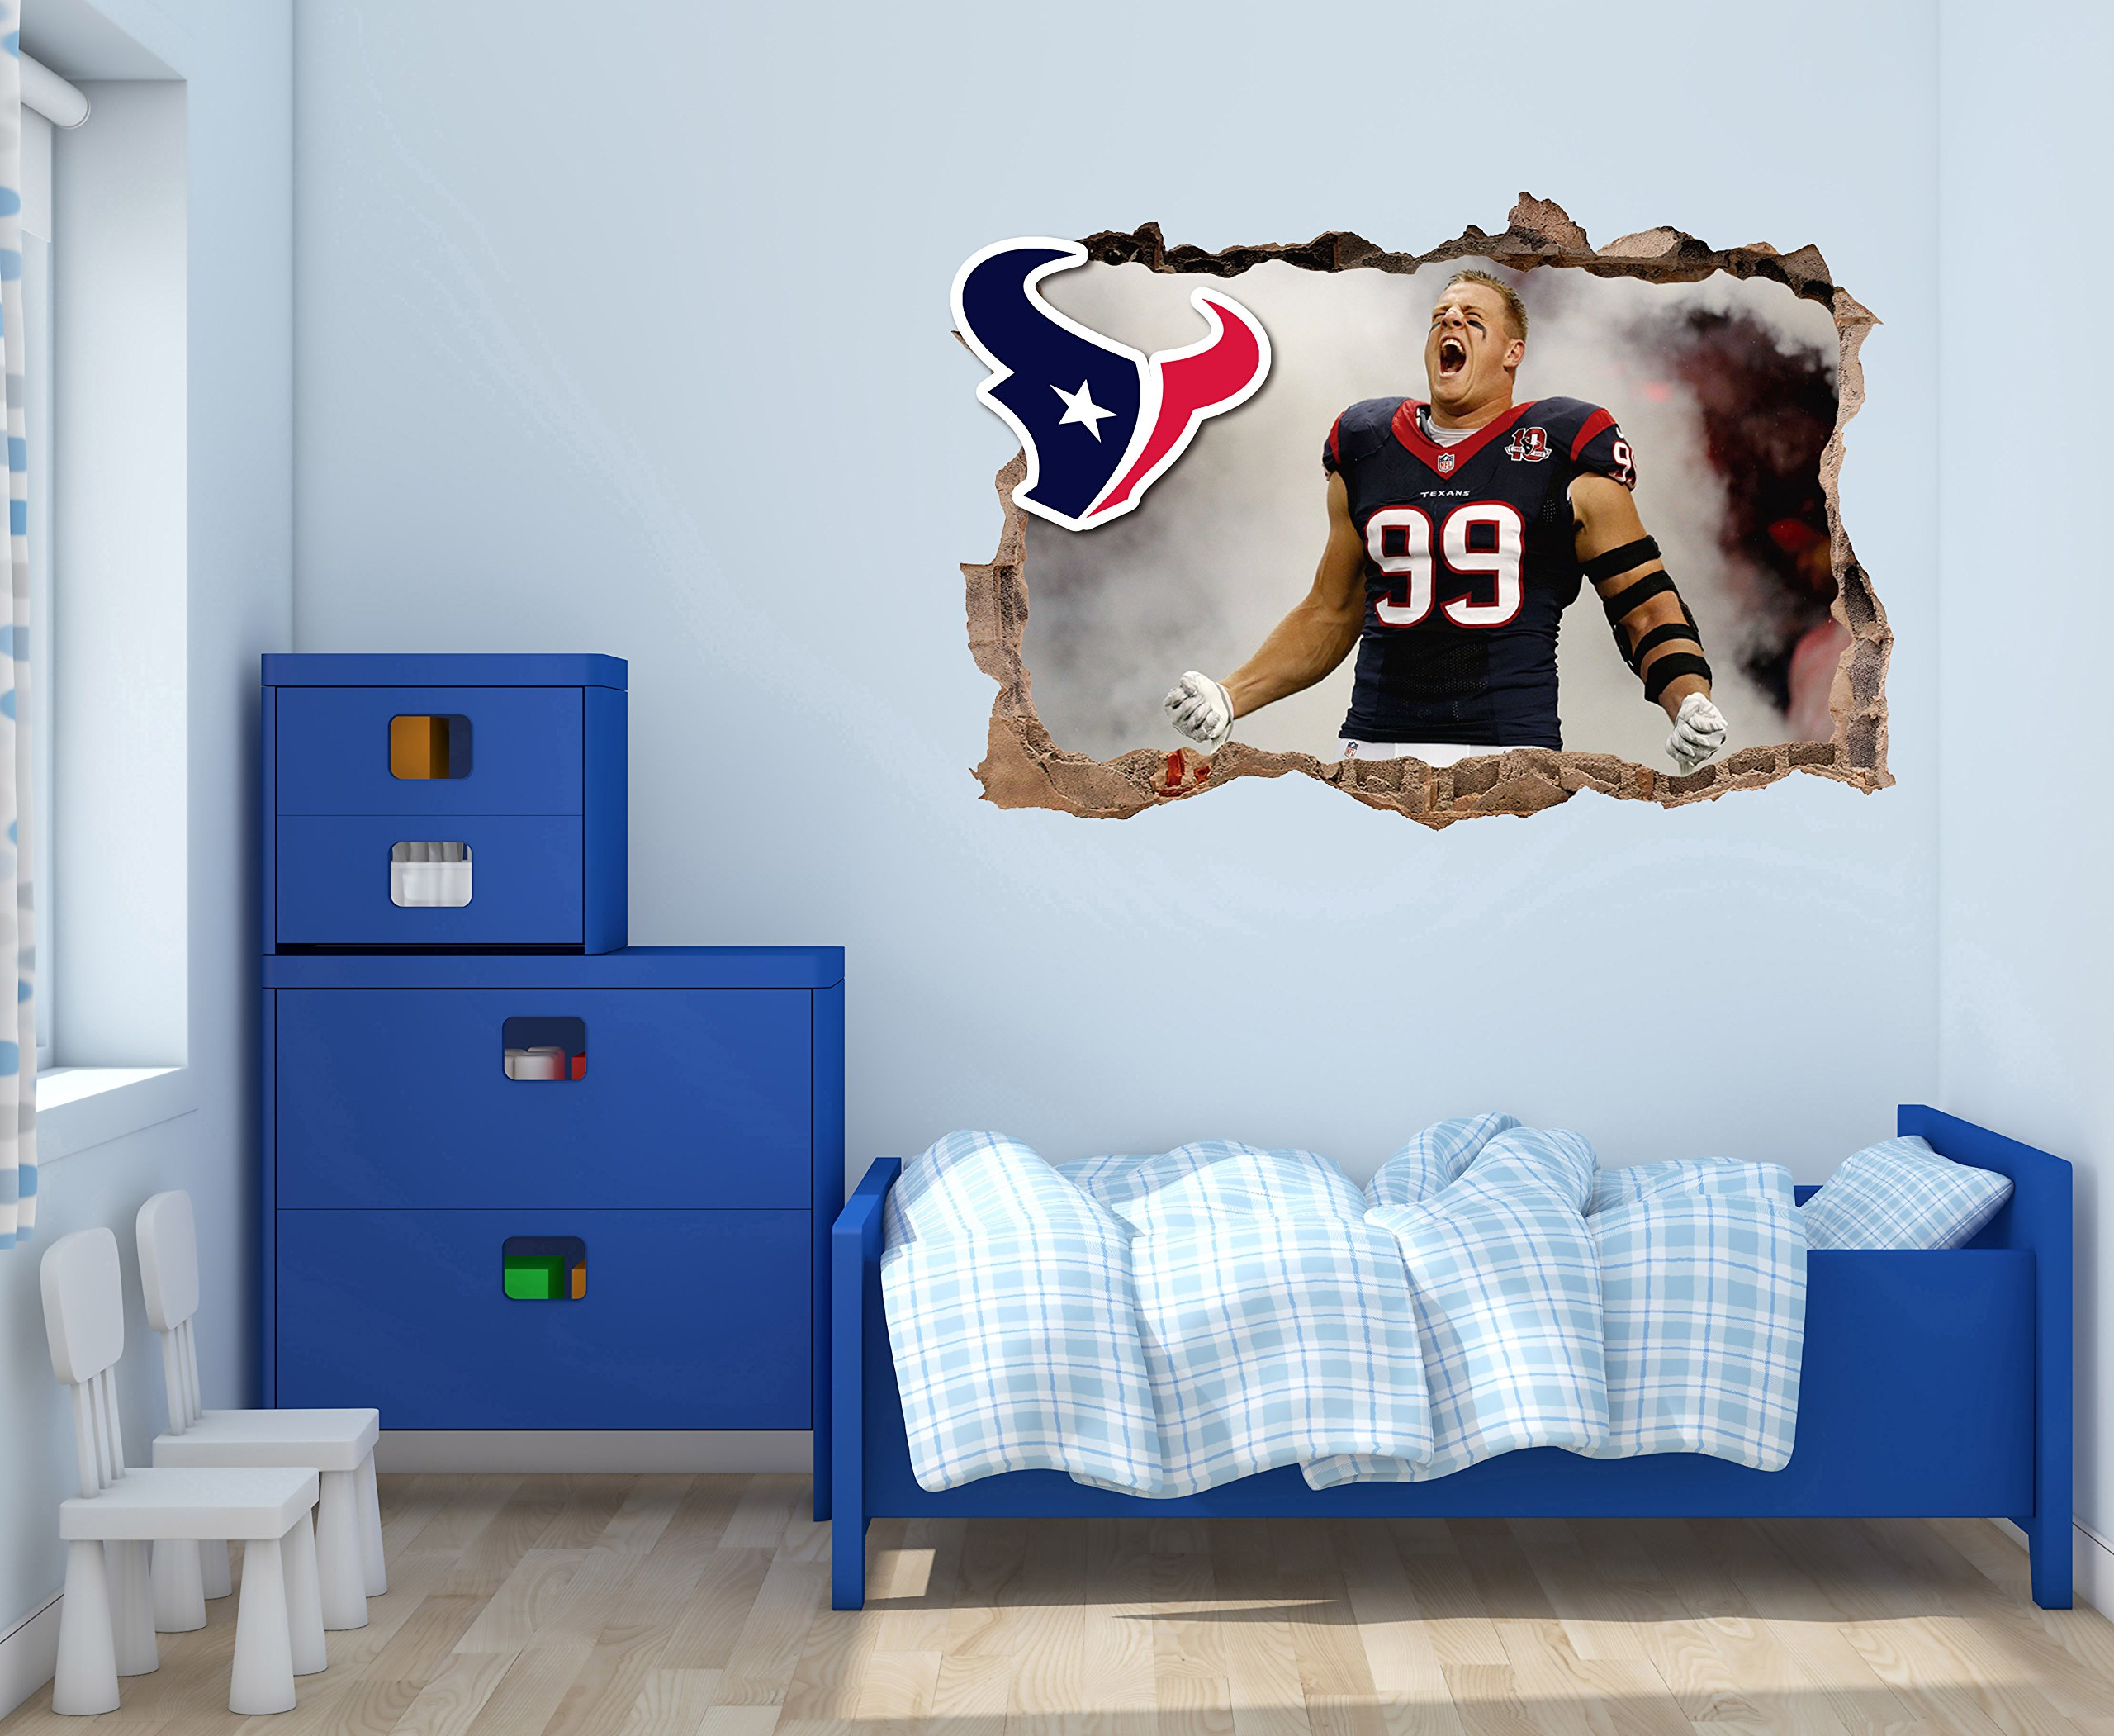 JJ Watt Houstons Texans - 3D Smashed Wall Effect - Wall Decal For Home Nursery Decoration